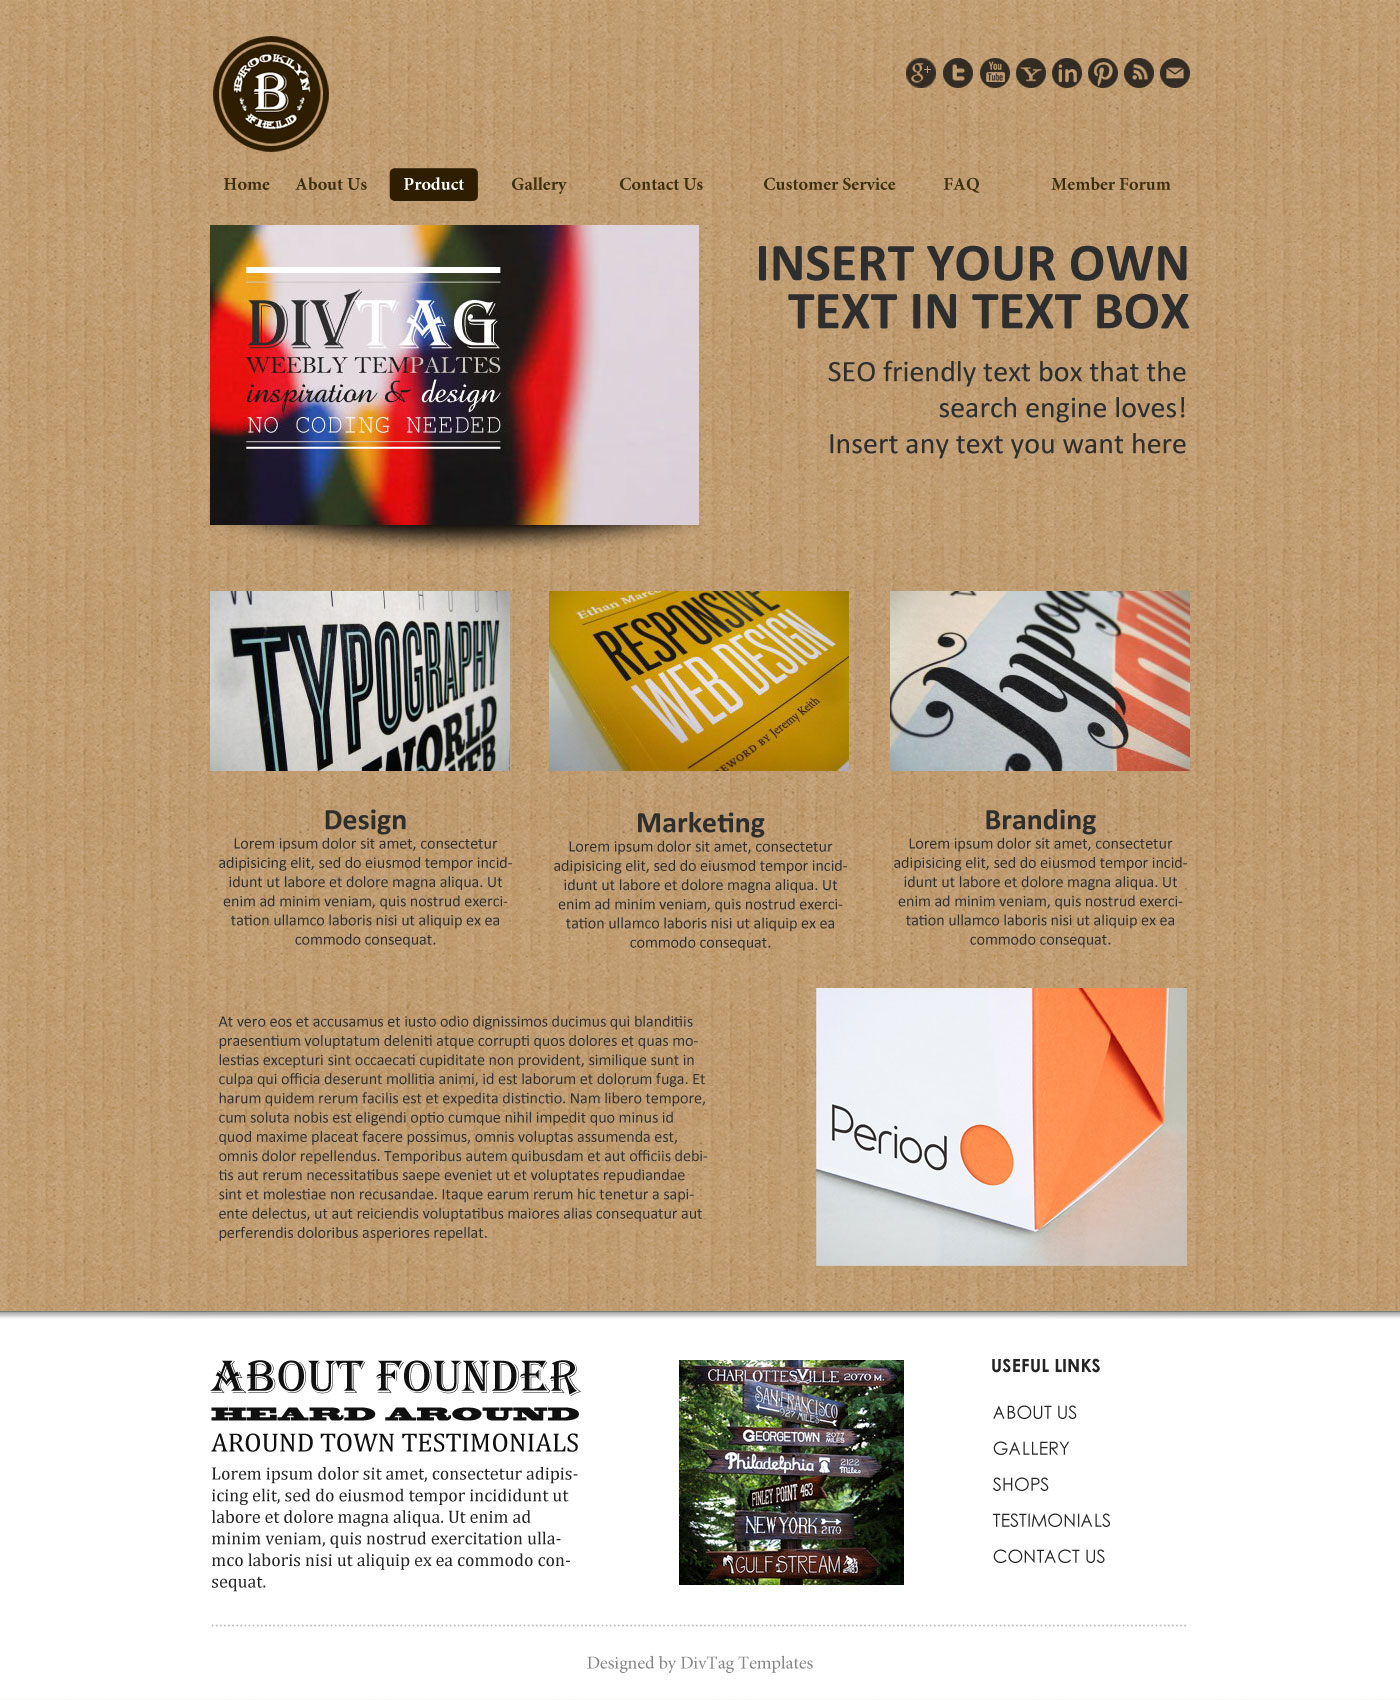 Weebly Templates & Weebly Themes - Brooklyn Field